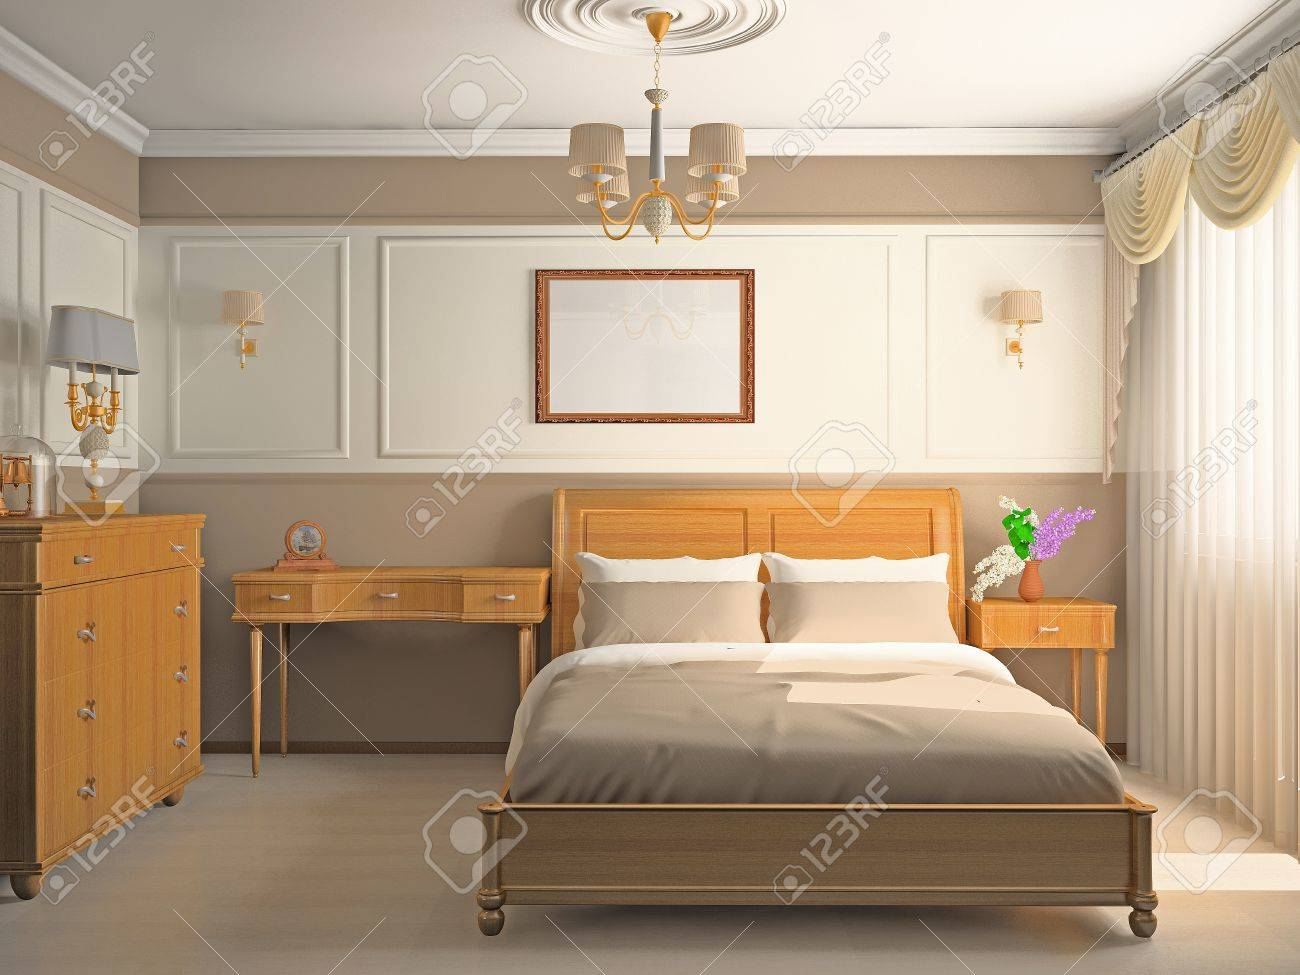 Modern interior of a bedroom room 3D Stock Photo - 10544982